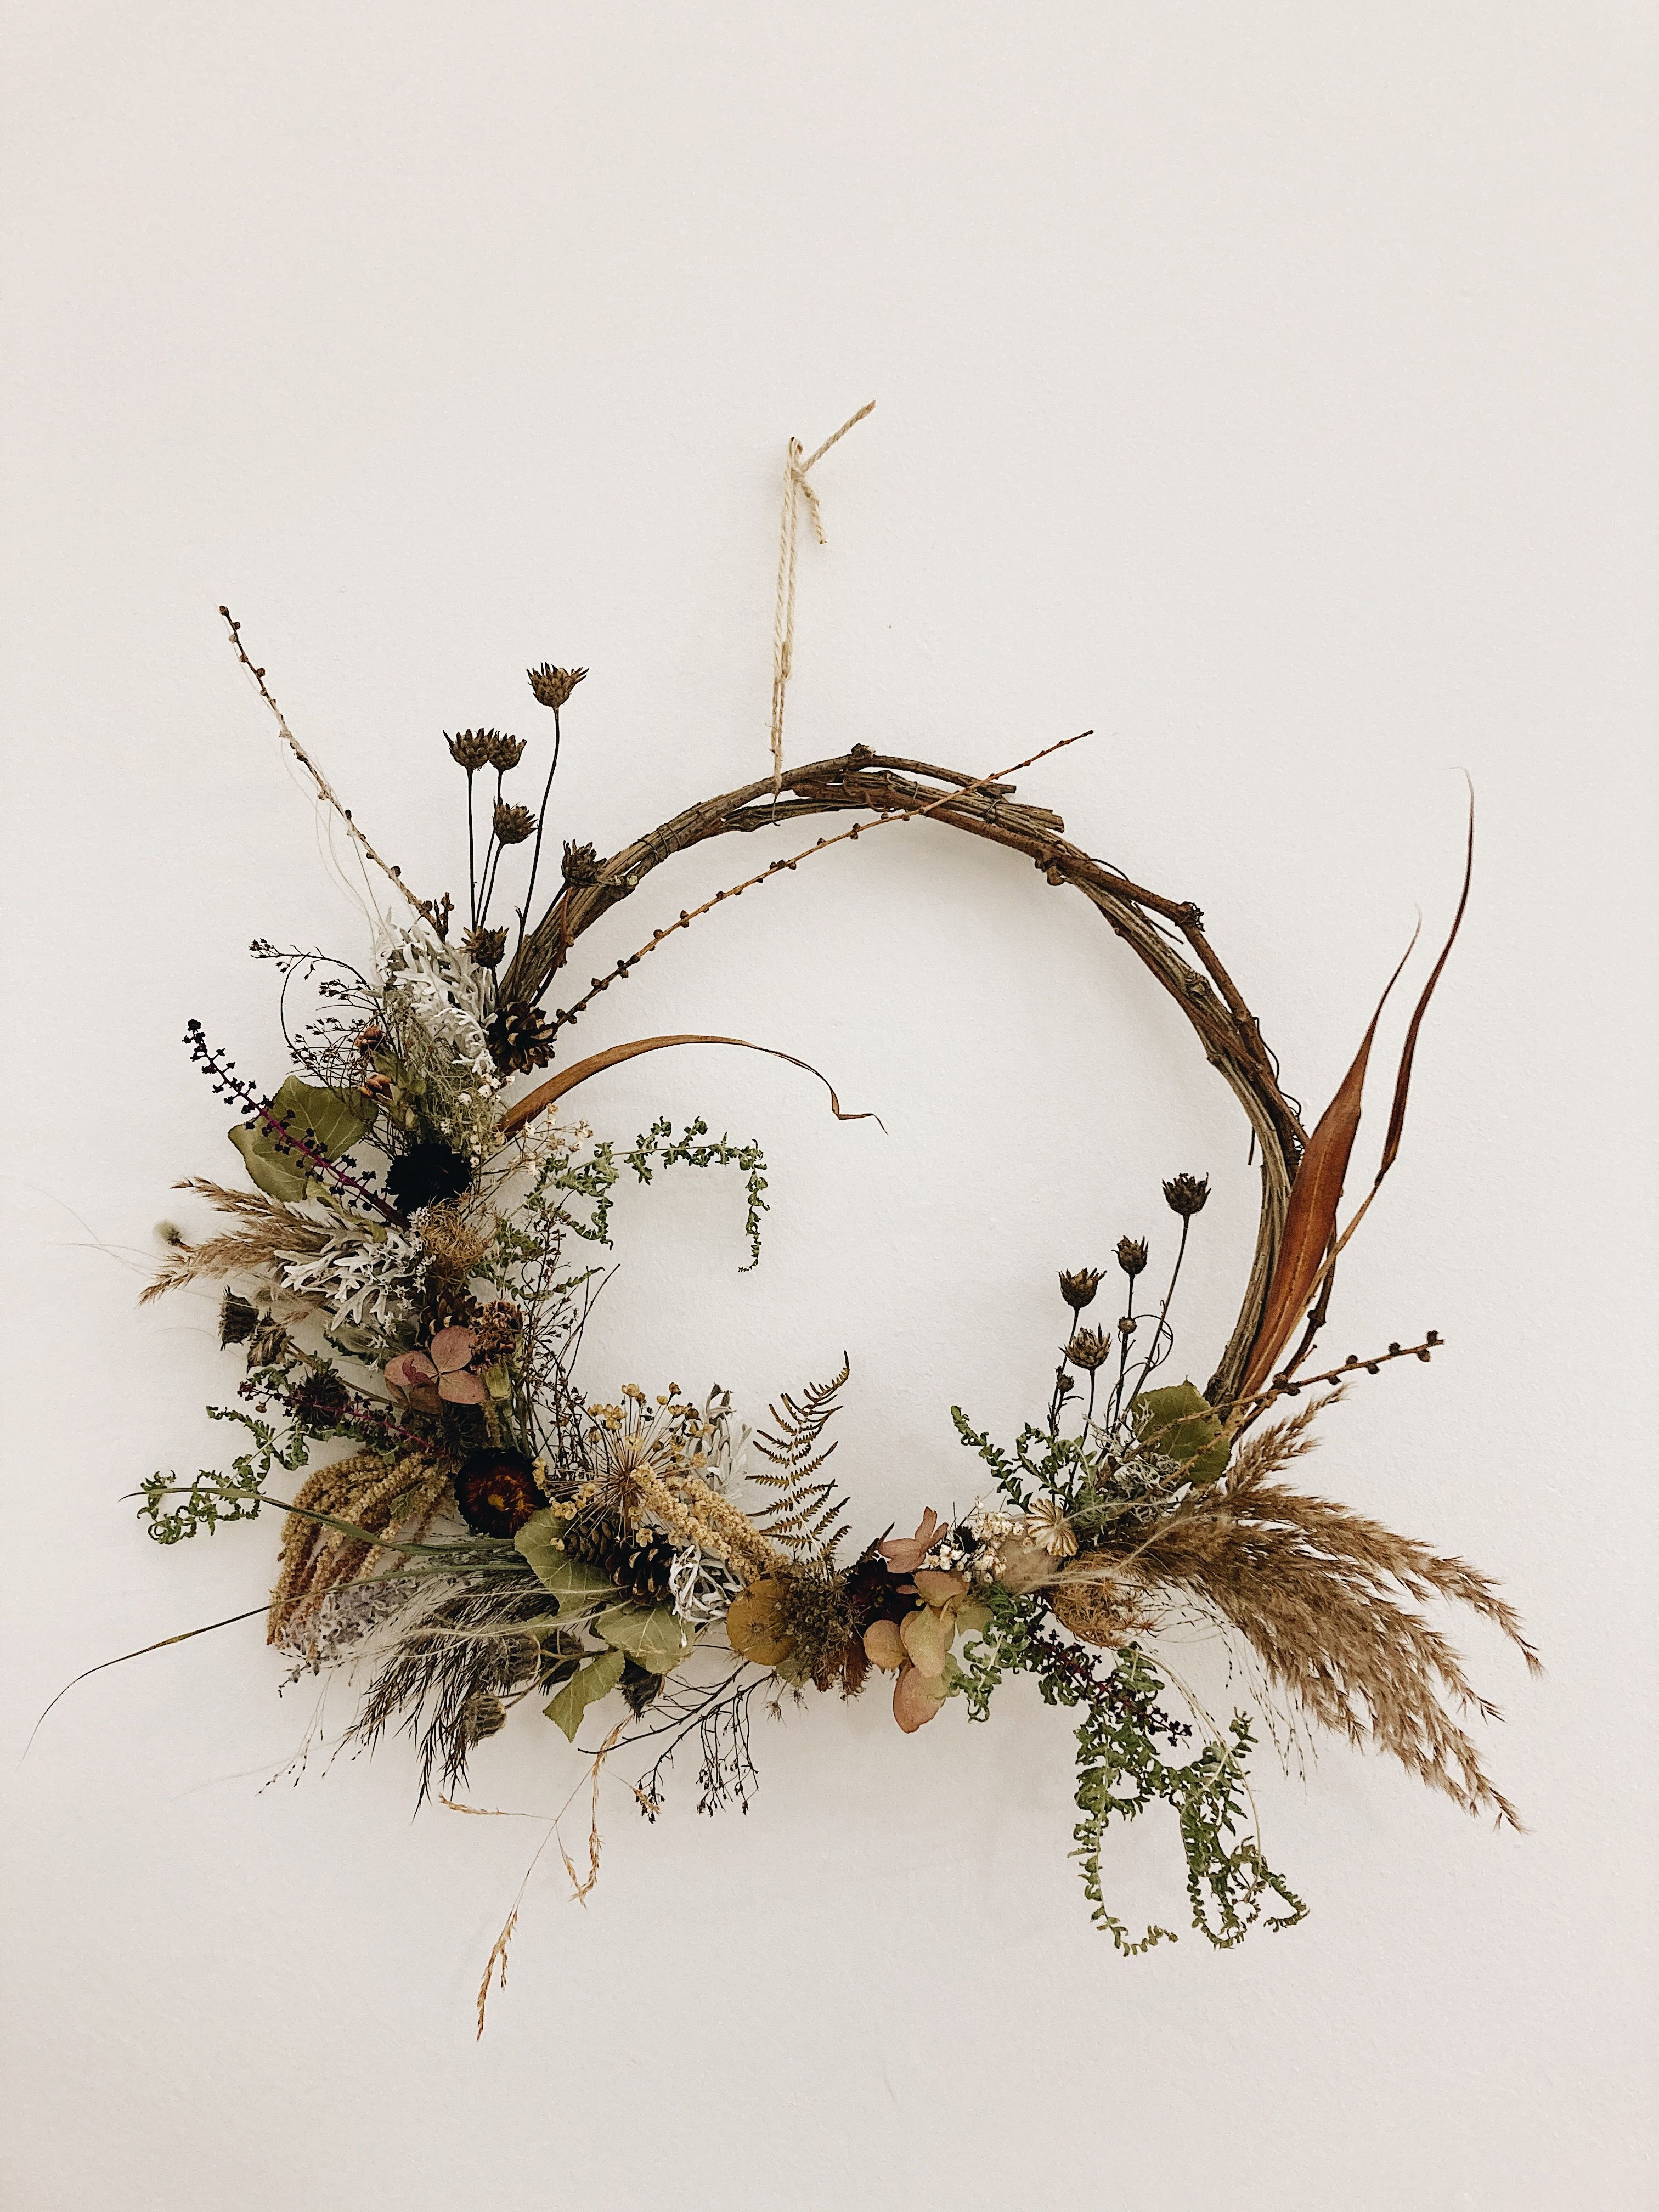 unconventional home decor for winter and Christmas #driedflowers #wreath #homedecor #christmasdecoration